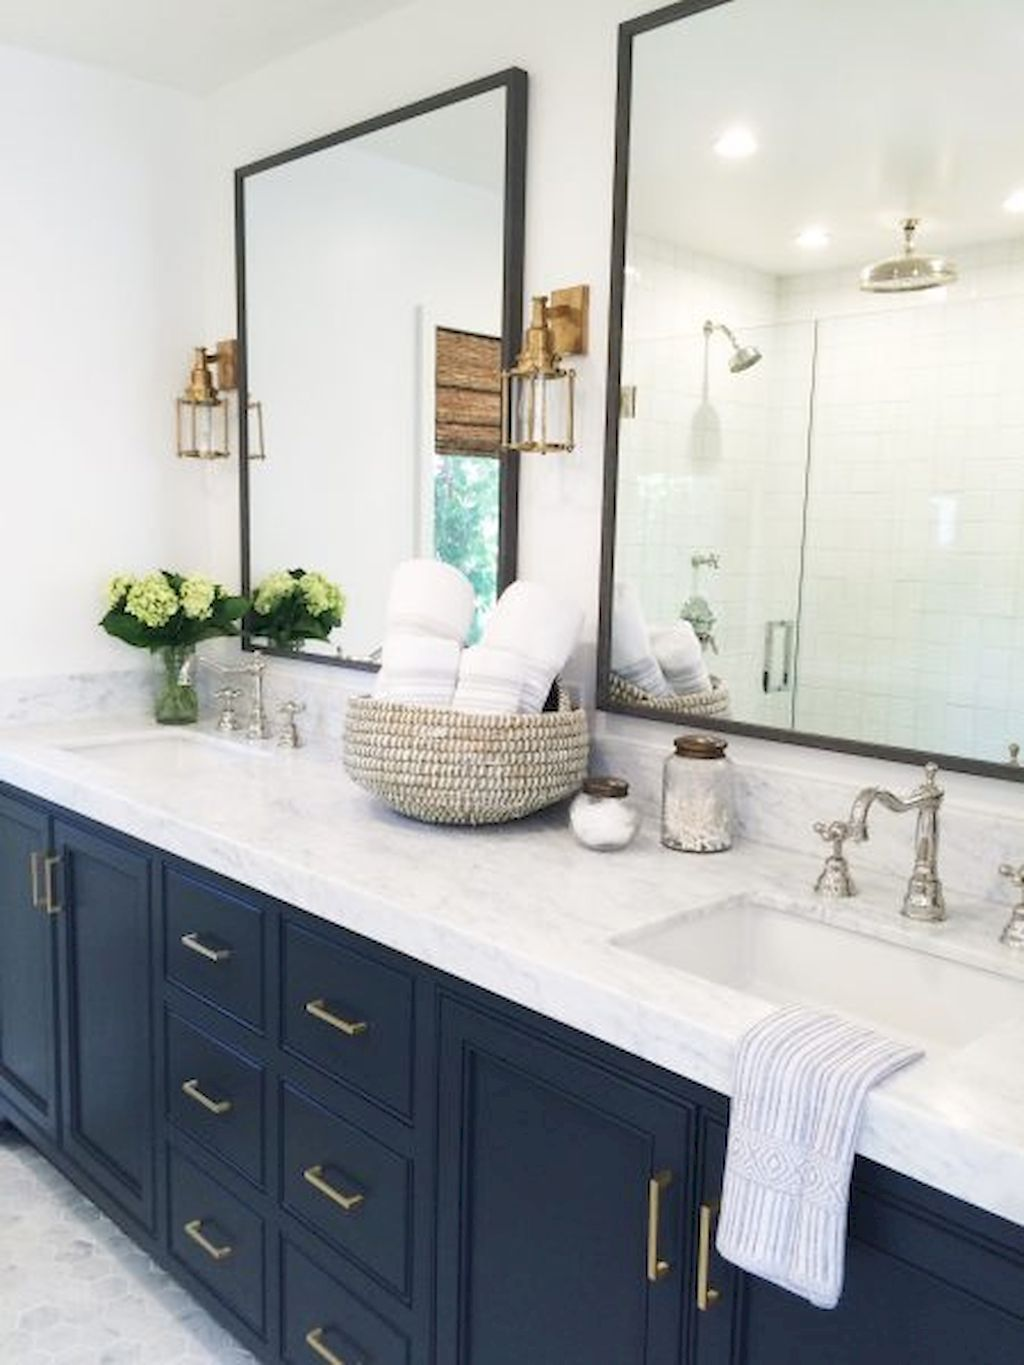 75 Amazing Bathroom in Blue Remodel Ideas | Bath and Remodeling ideas